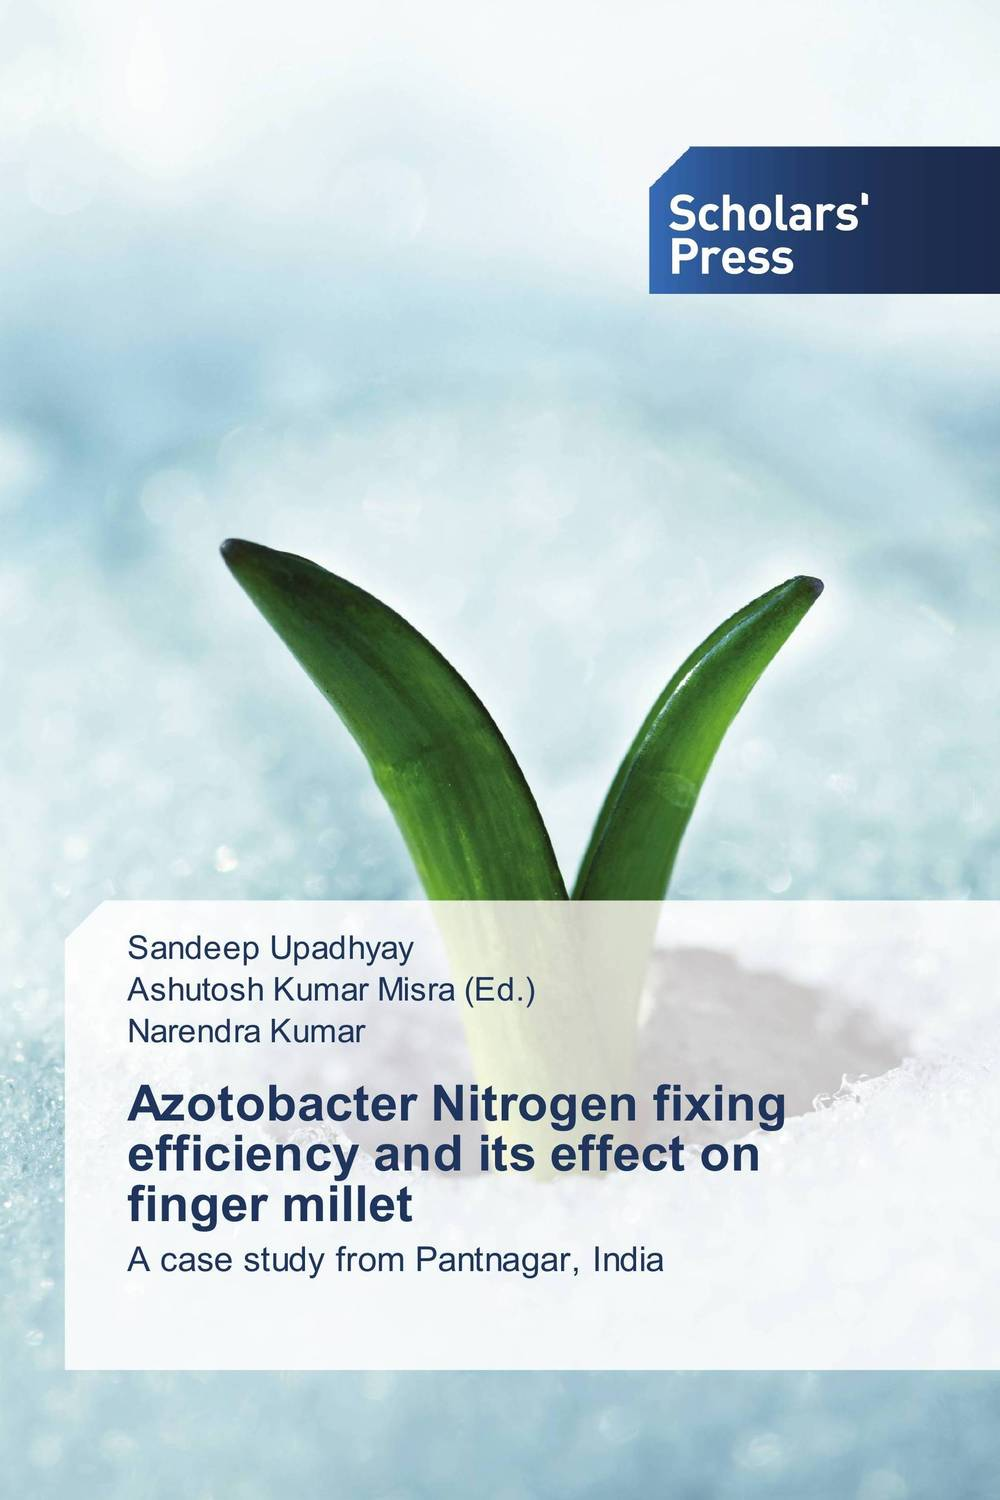 Azotobacter Nitrogen fixing efficiency and its effect on finger millet ramwant gupta and munna singh recent physiological advances of finger millet